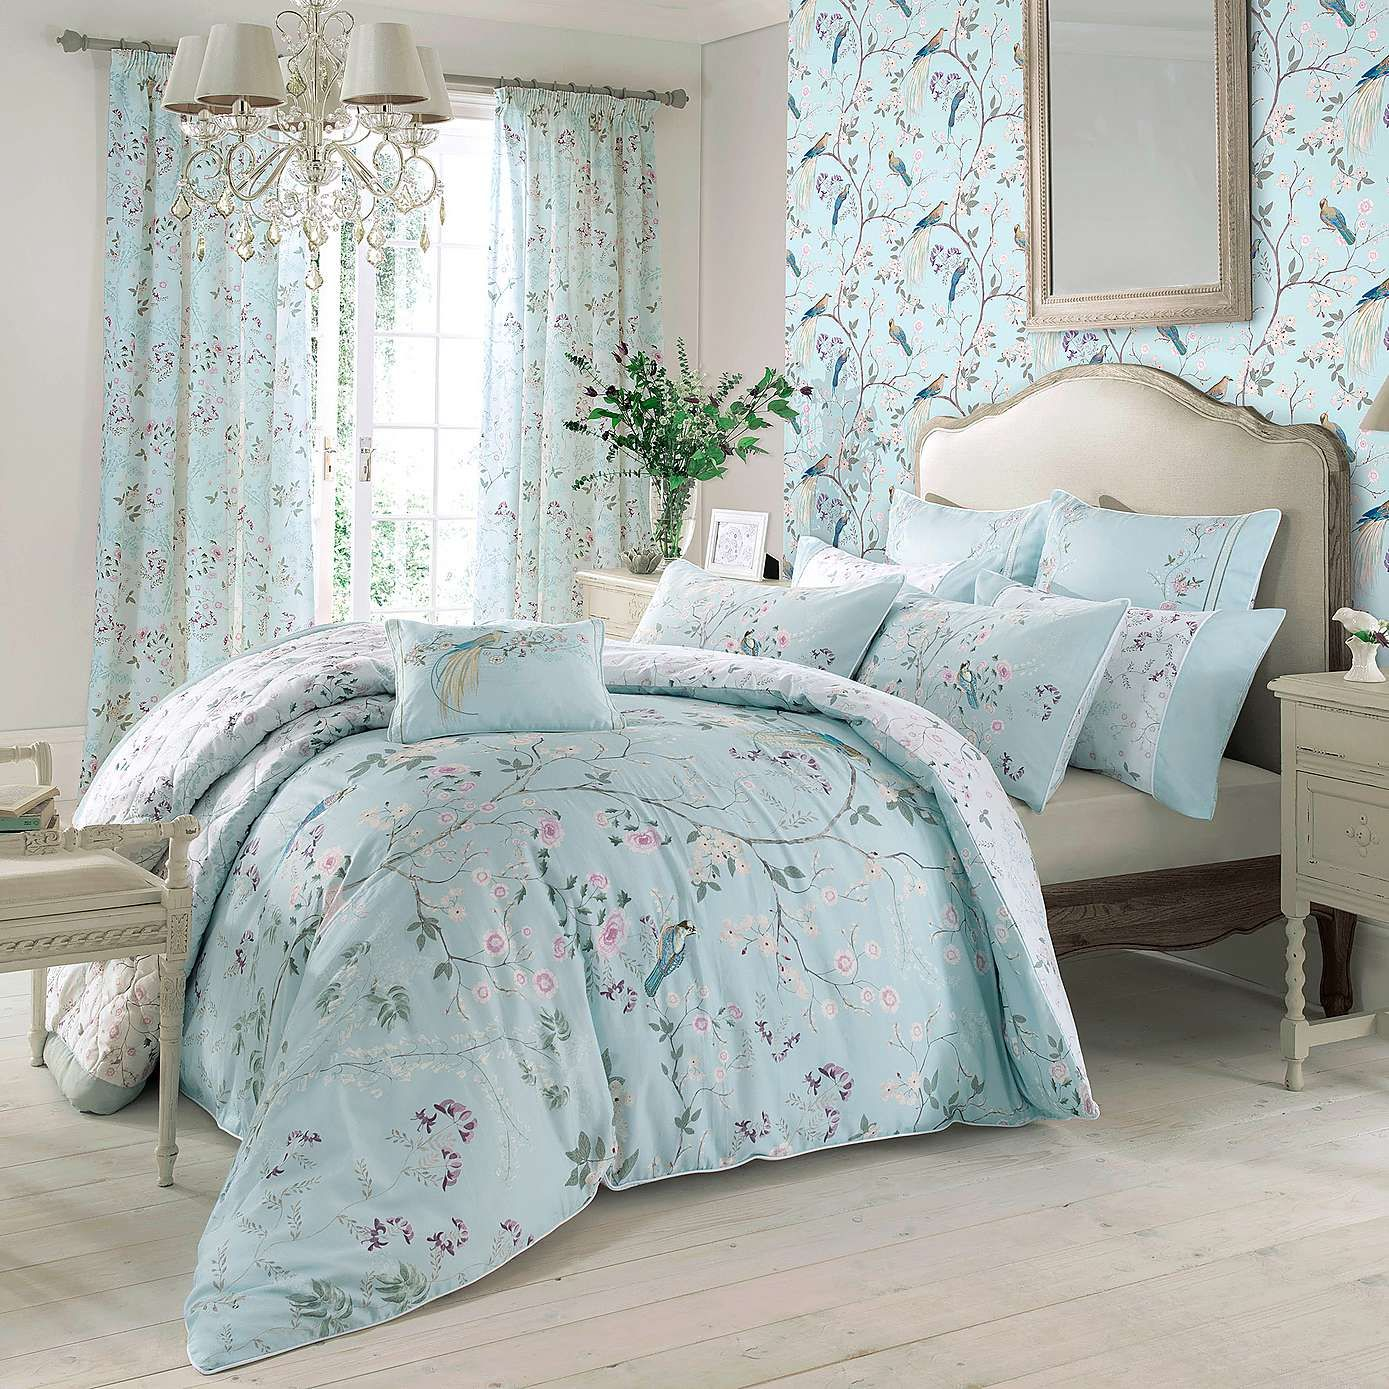 Bedroom Decorating Ideas Duck Egg Blue dorma duck egg maiya bed linen collection | dunelm | goldilocks